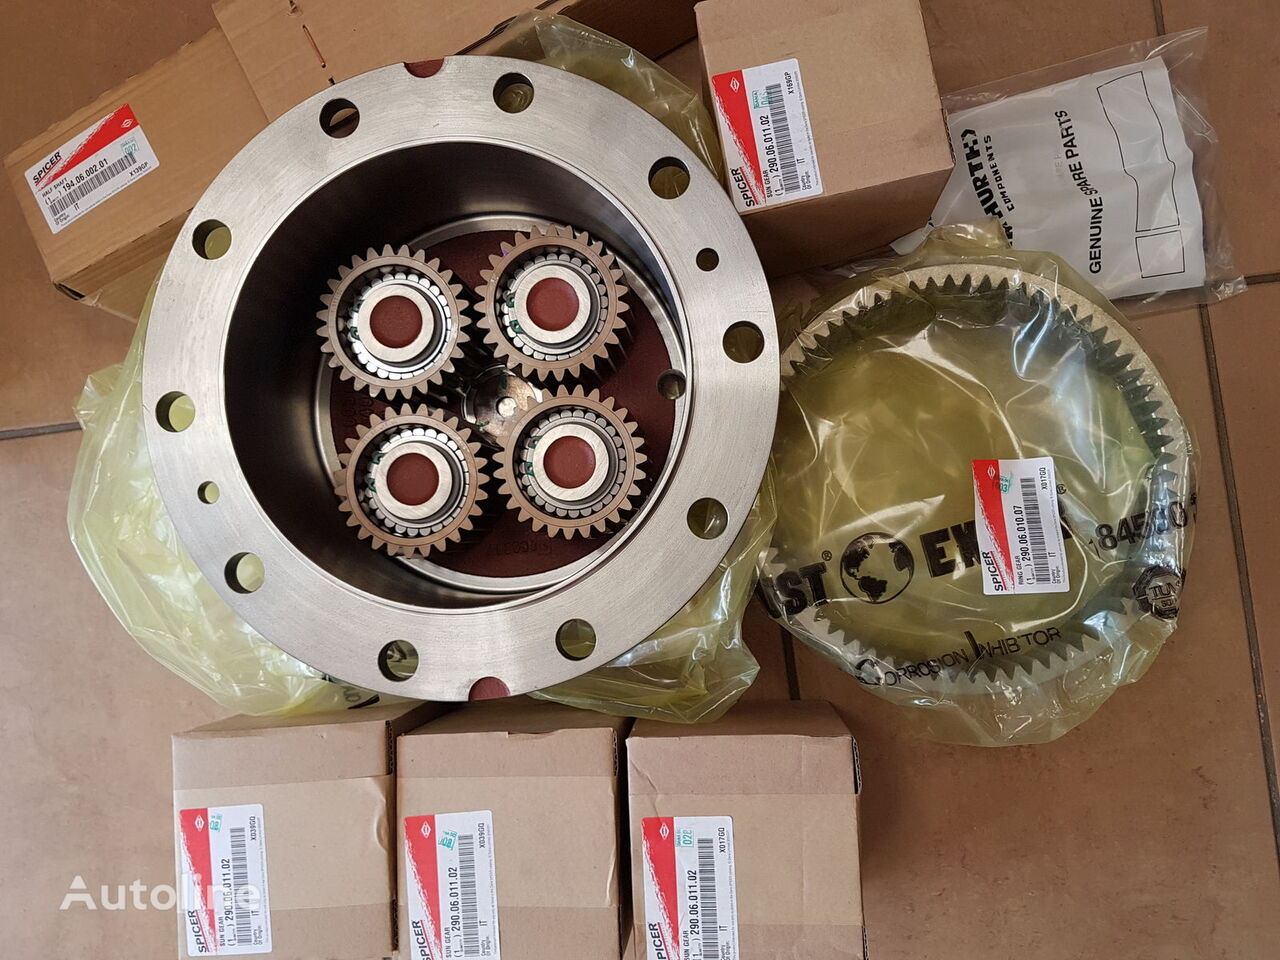 new Dana SPICER final drive for excavator